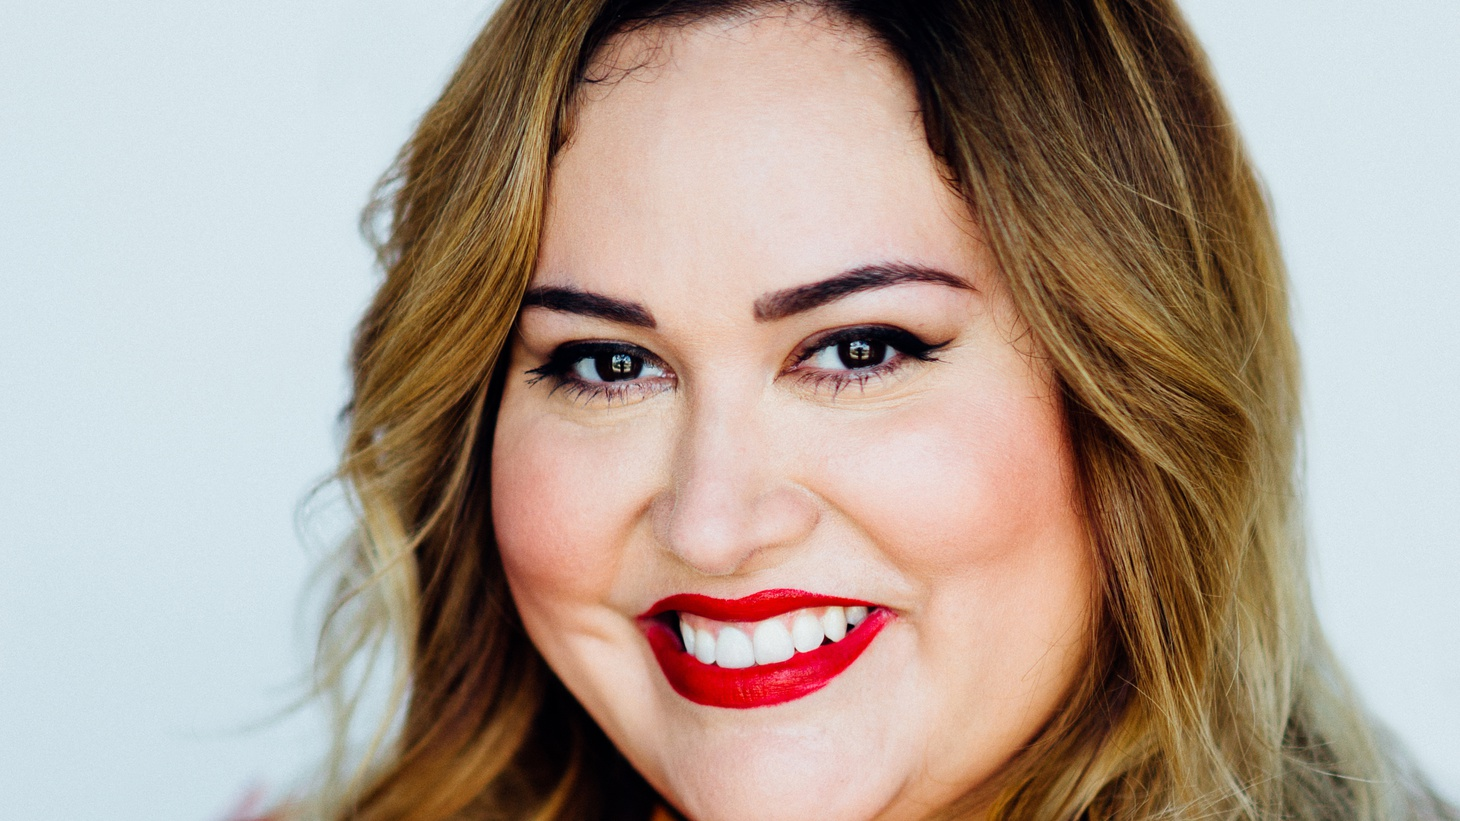 Soon after Tanya Saracho got the green light to write a pilot for her first TV series, she contracted a dangerous spinal infection that left her stuck in bed for months. But Saracho rallied and her show 'Vida' has just premiered on Starz.